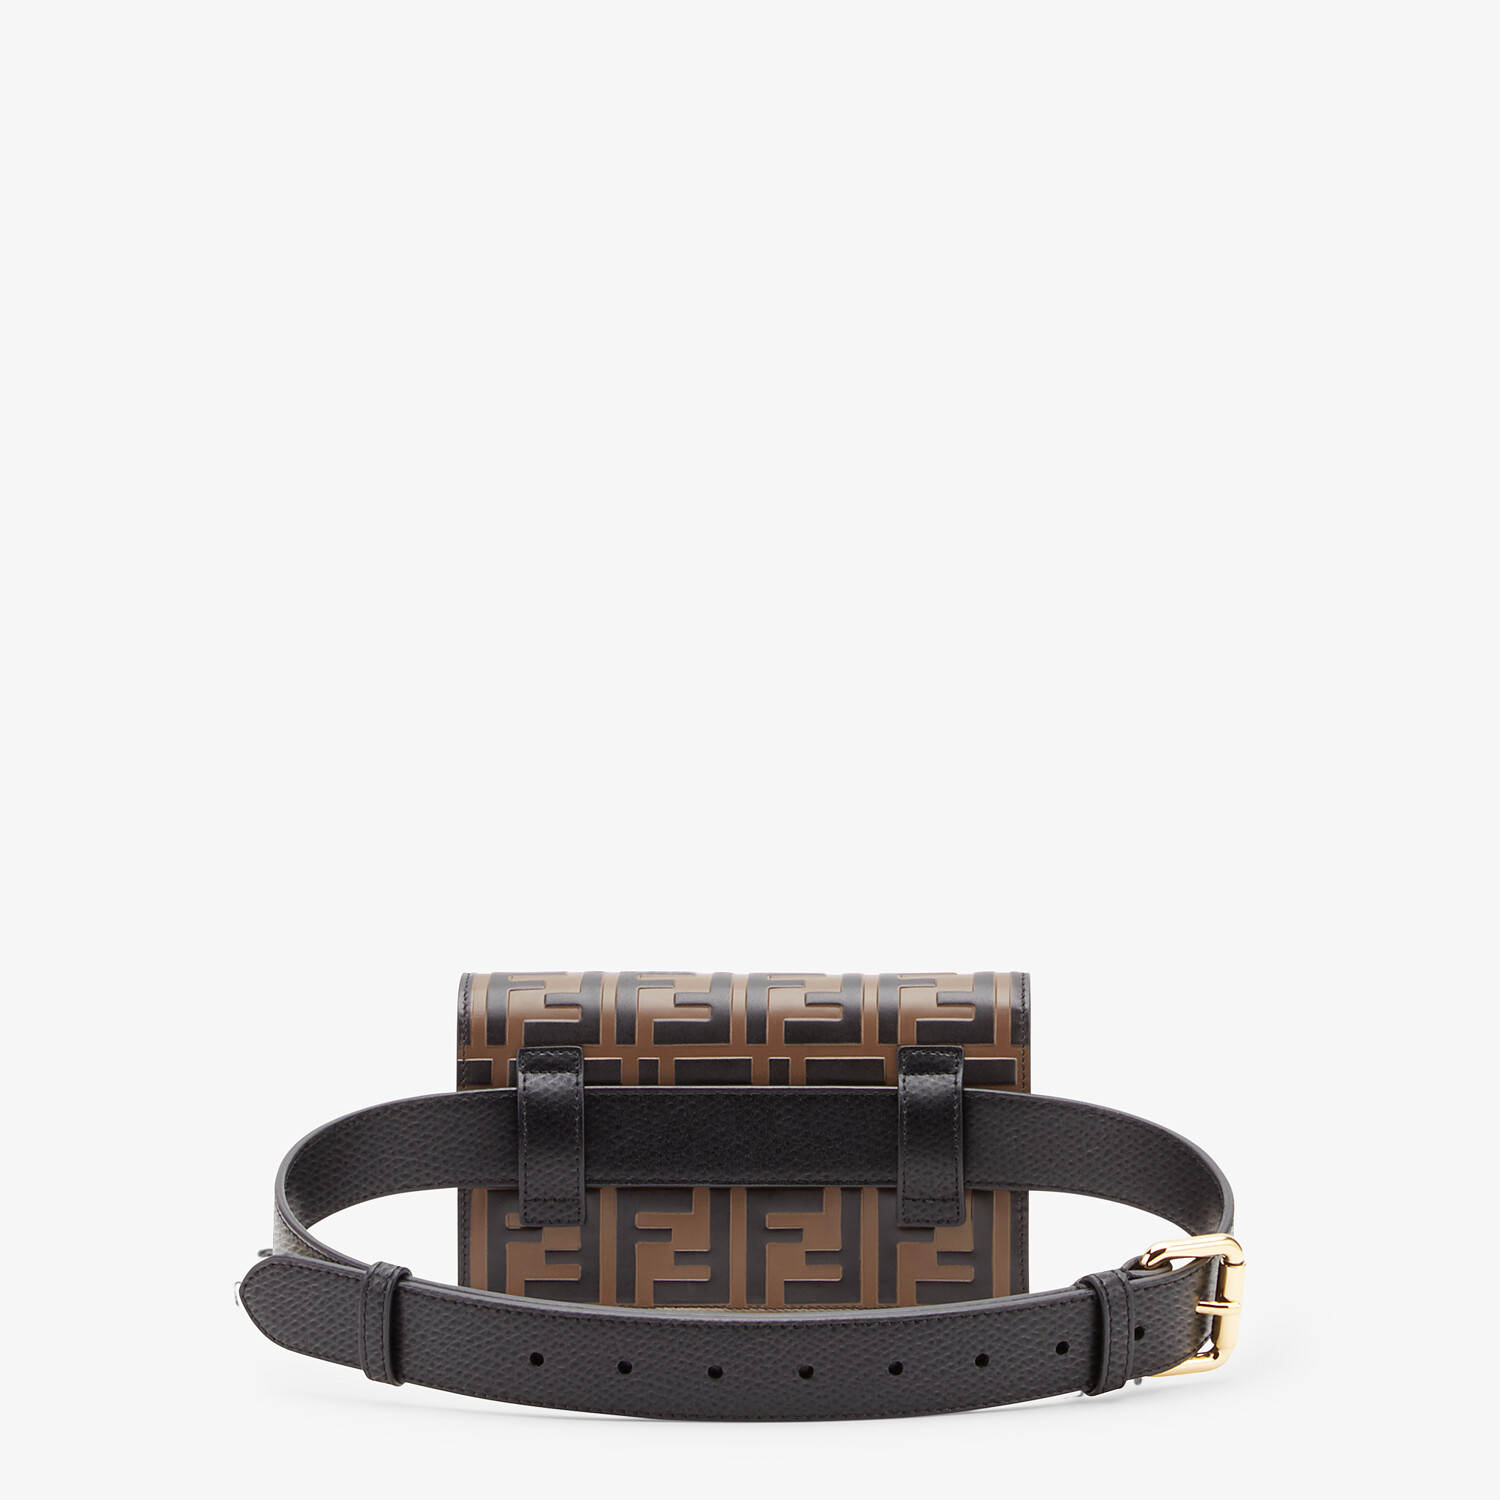 FENDI BELT BAG - Multicolor leather belt bag - view 3 detail